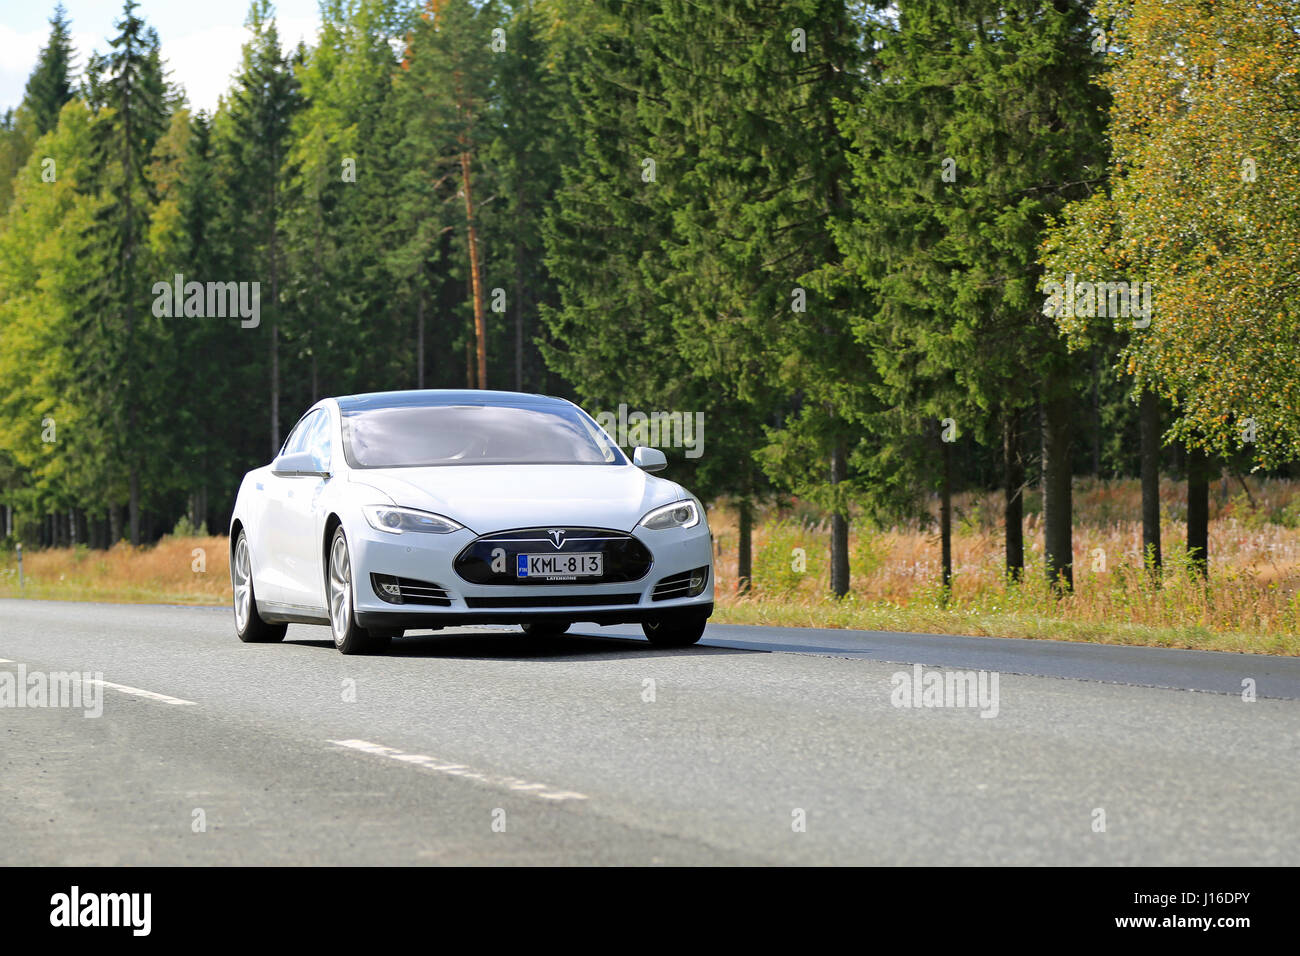 HUMPPILA, FINLAND - SEPTEMBER 12, 2015: Tesla Model S electric car on the road. Tesla's autopilot technology is - Stock Image